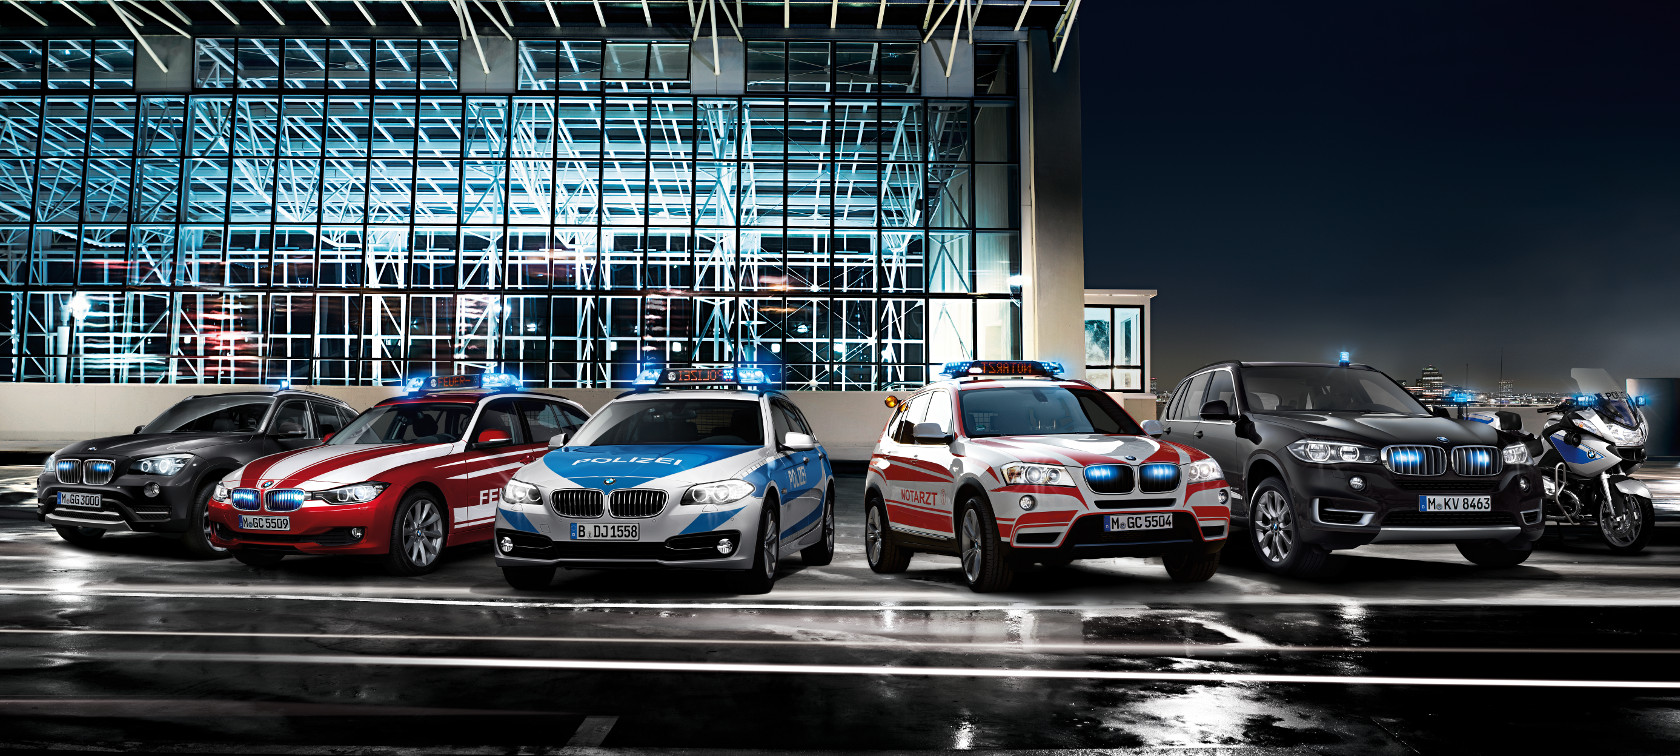 BMW Authority Vehicles